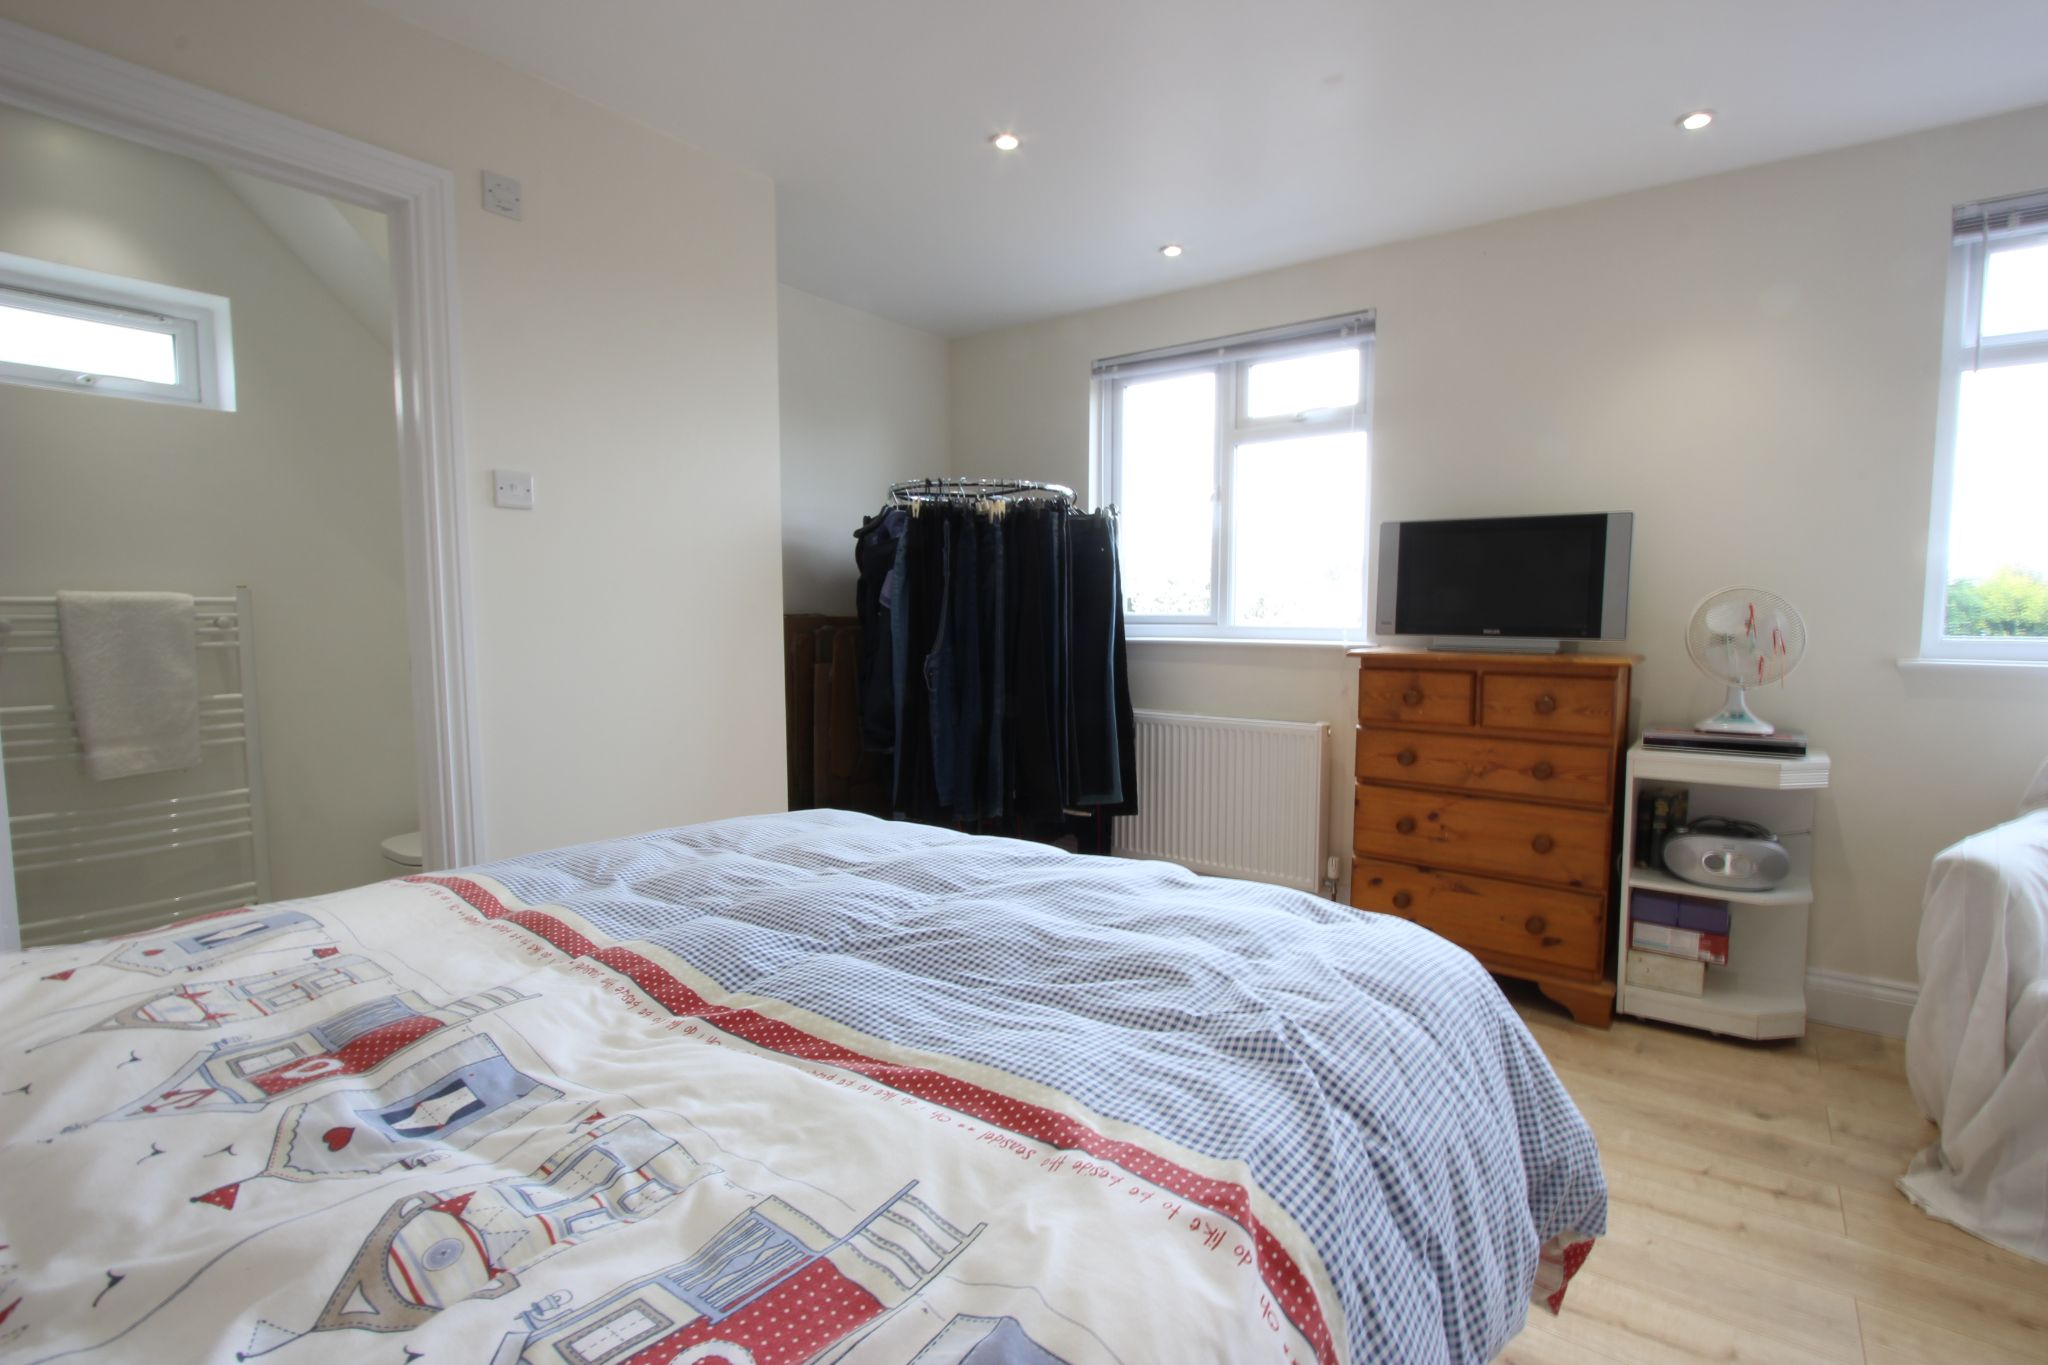 4 bedroom chalet house SSTC in Potters Bar - Photograph 6